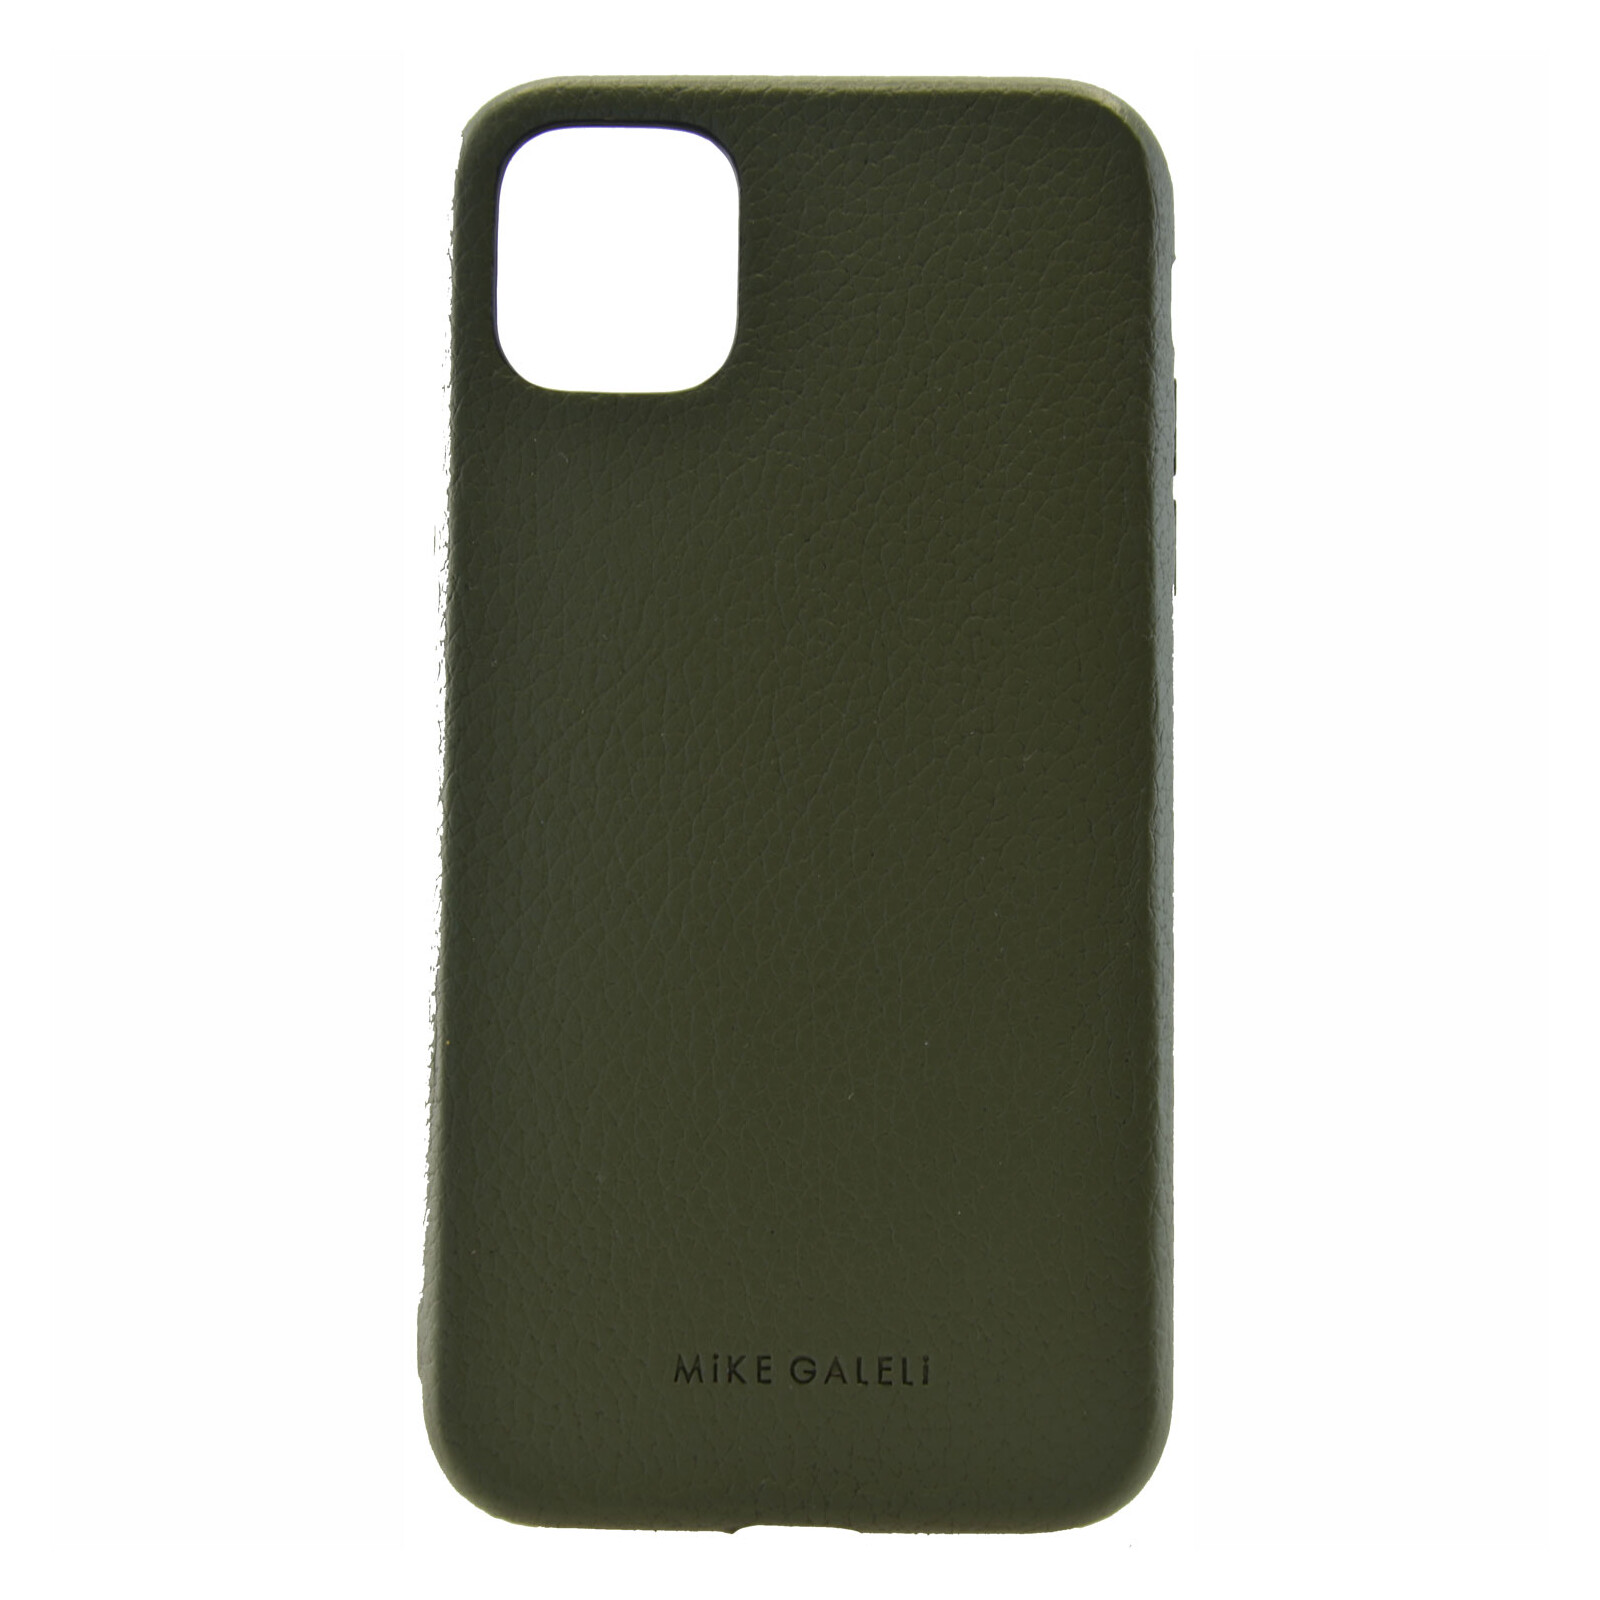 Galeli Backcover FINN Apple iPhone 12  Max/ Pro military